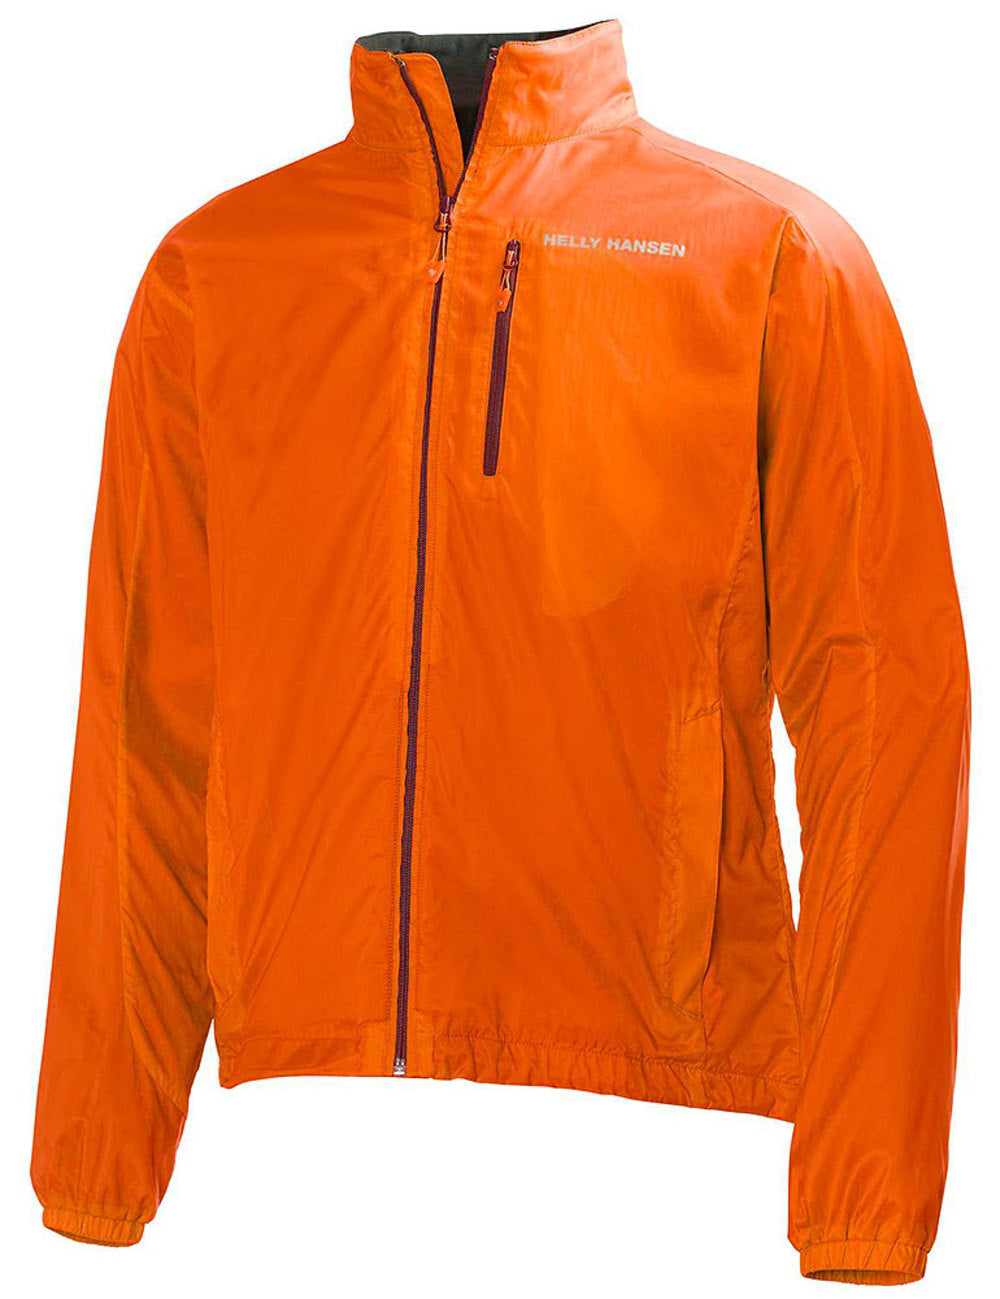 Odin Foil Jacket by Helly Hansen